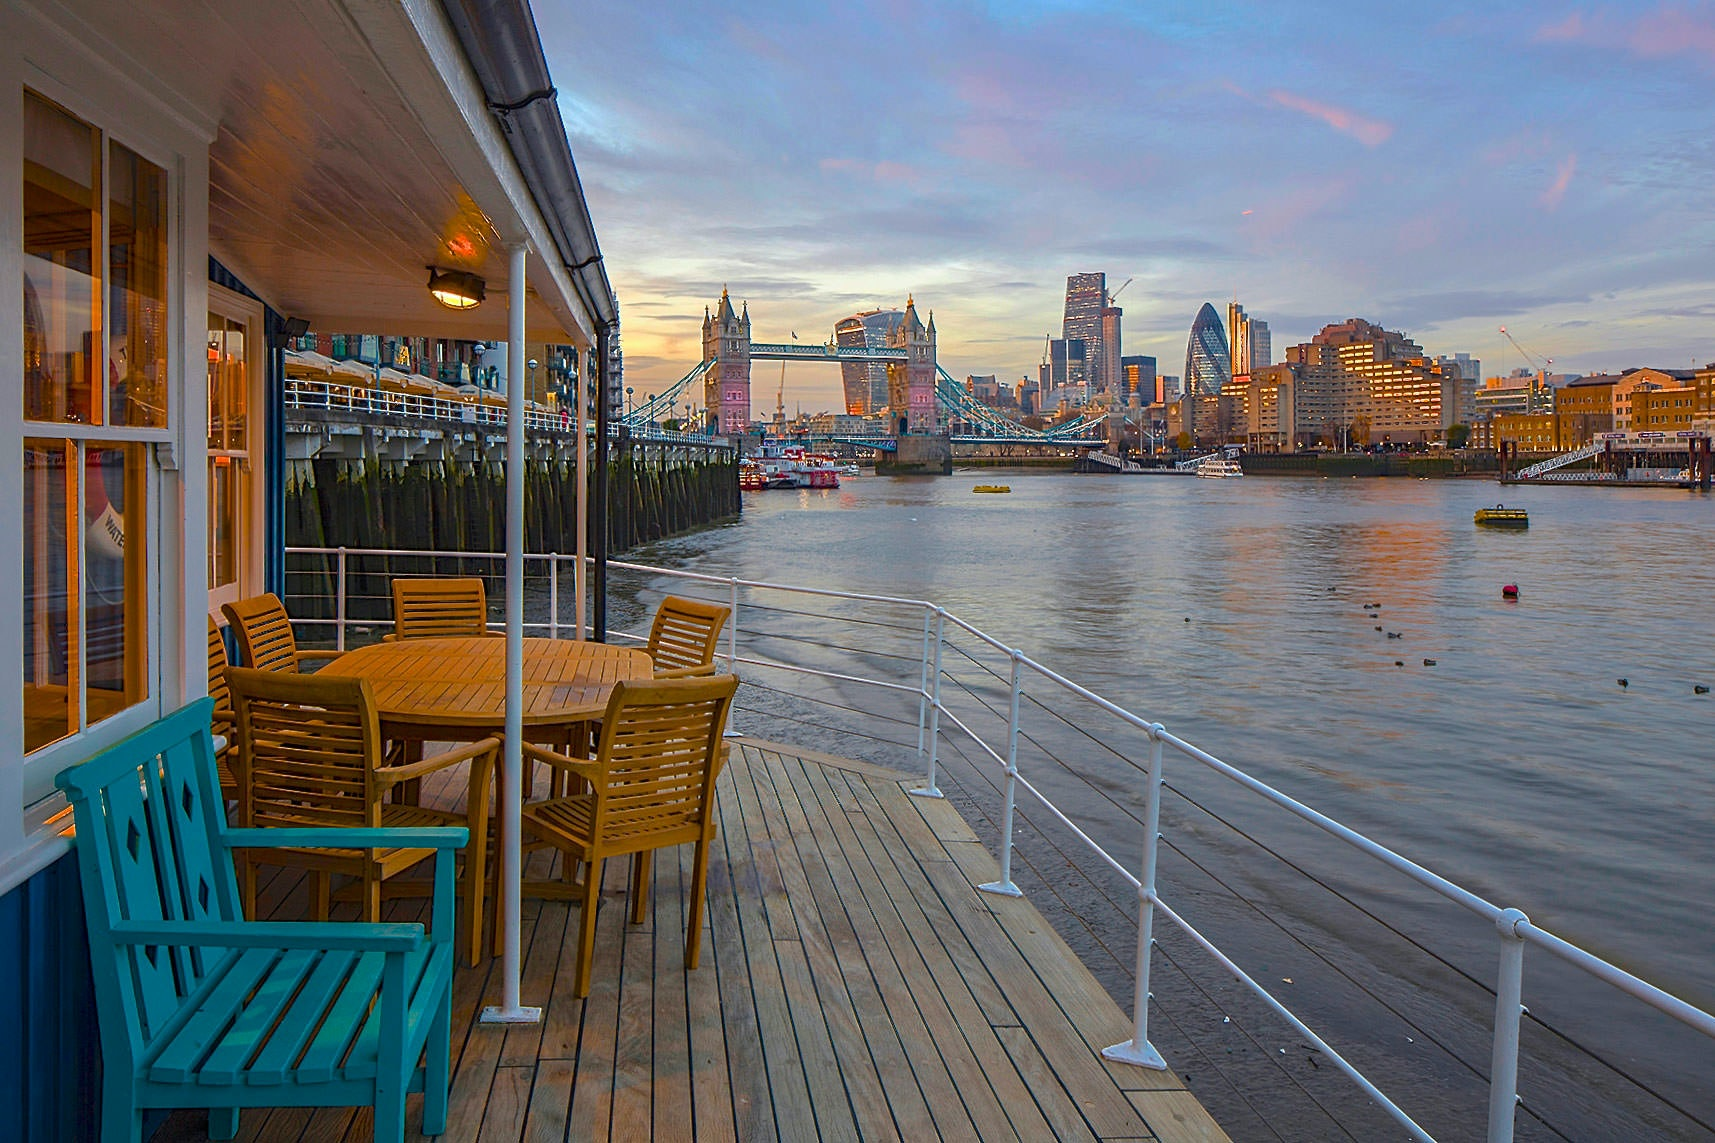 From This Lovely Houseboat S Terrace You Can Enjoy A Unique Viwe Of Tower Bridge While Drinking